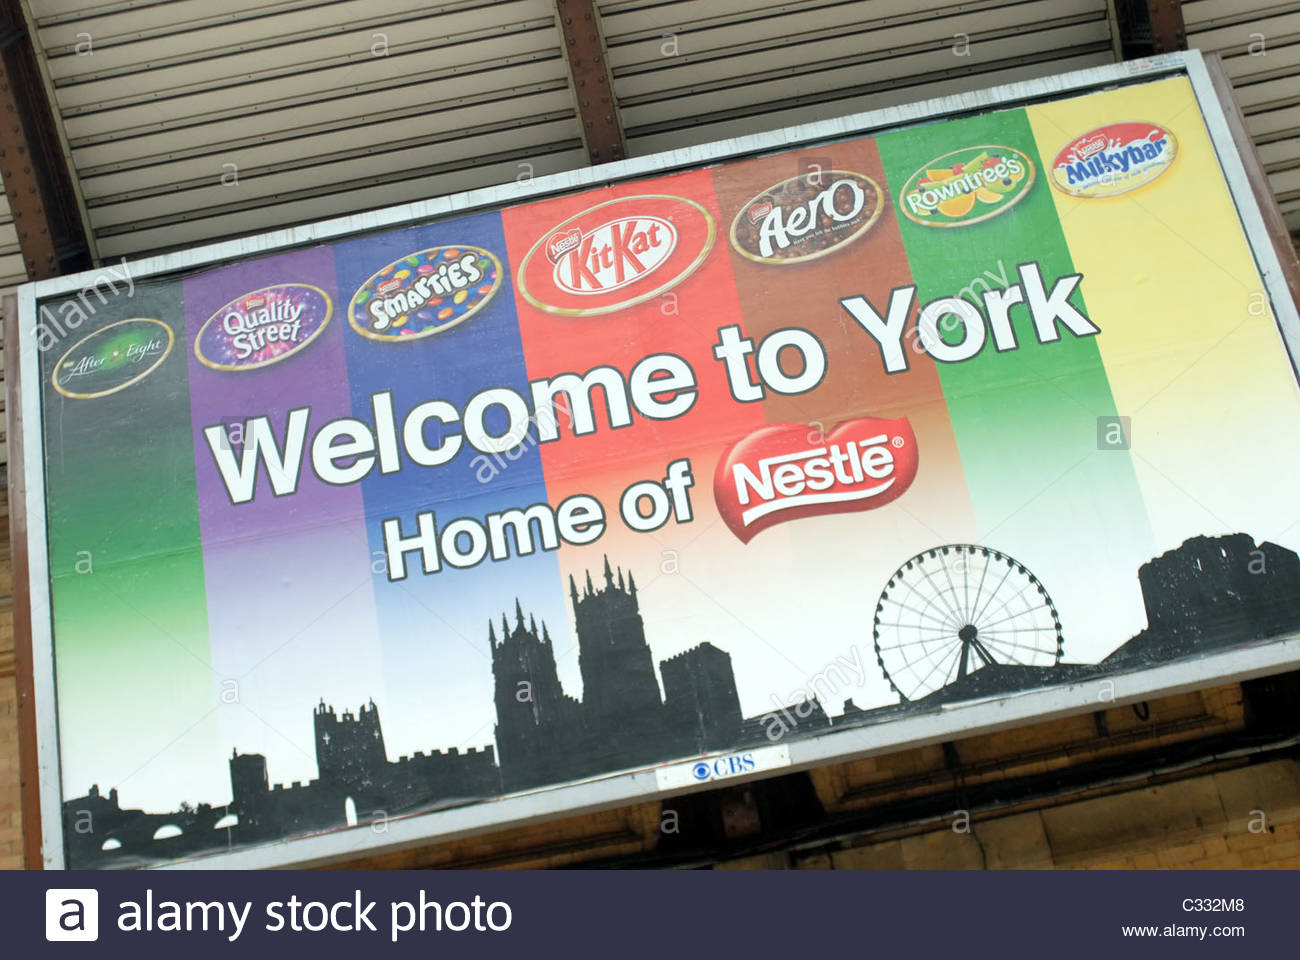 York UK Sign at the train station saying Welcome to York, Home of Nestle, this being so after Nestle took over local - Stock Image